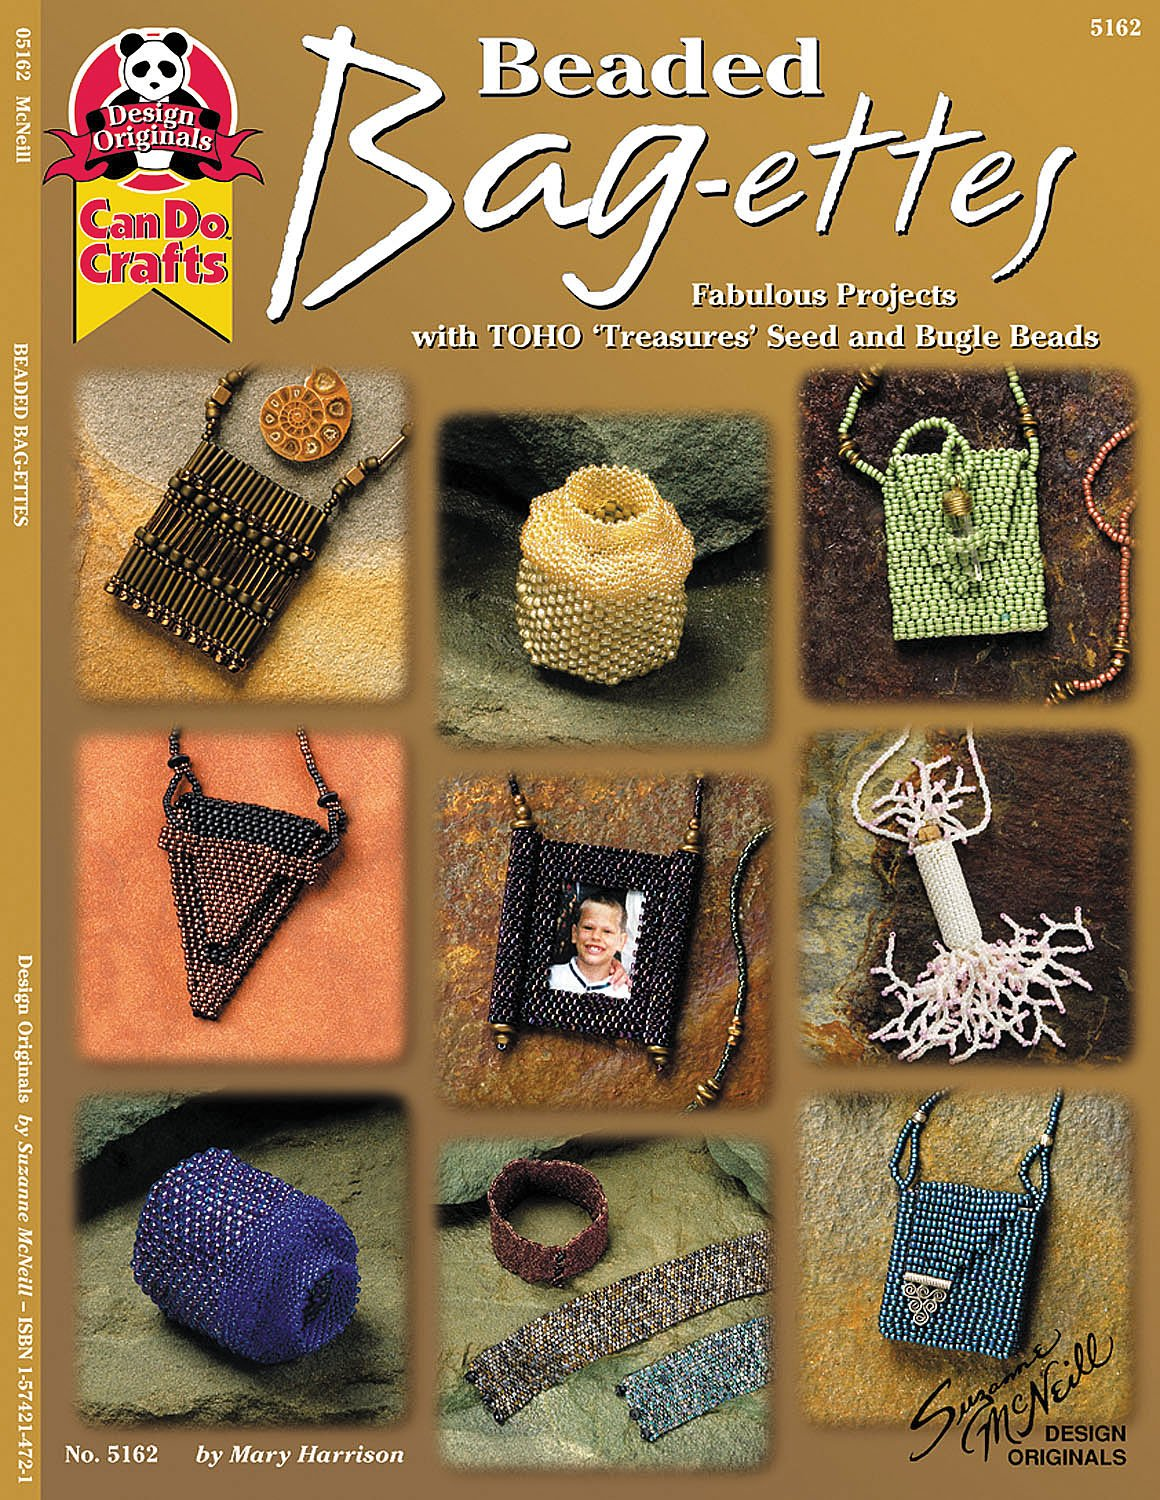 Beaded Bag-ettes: Fabulous Projects with TOHO